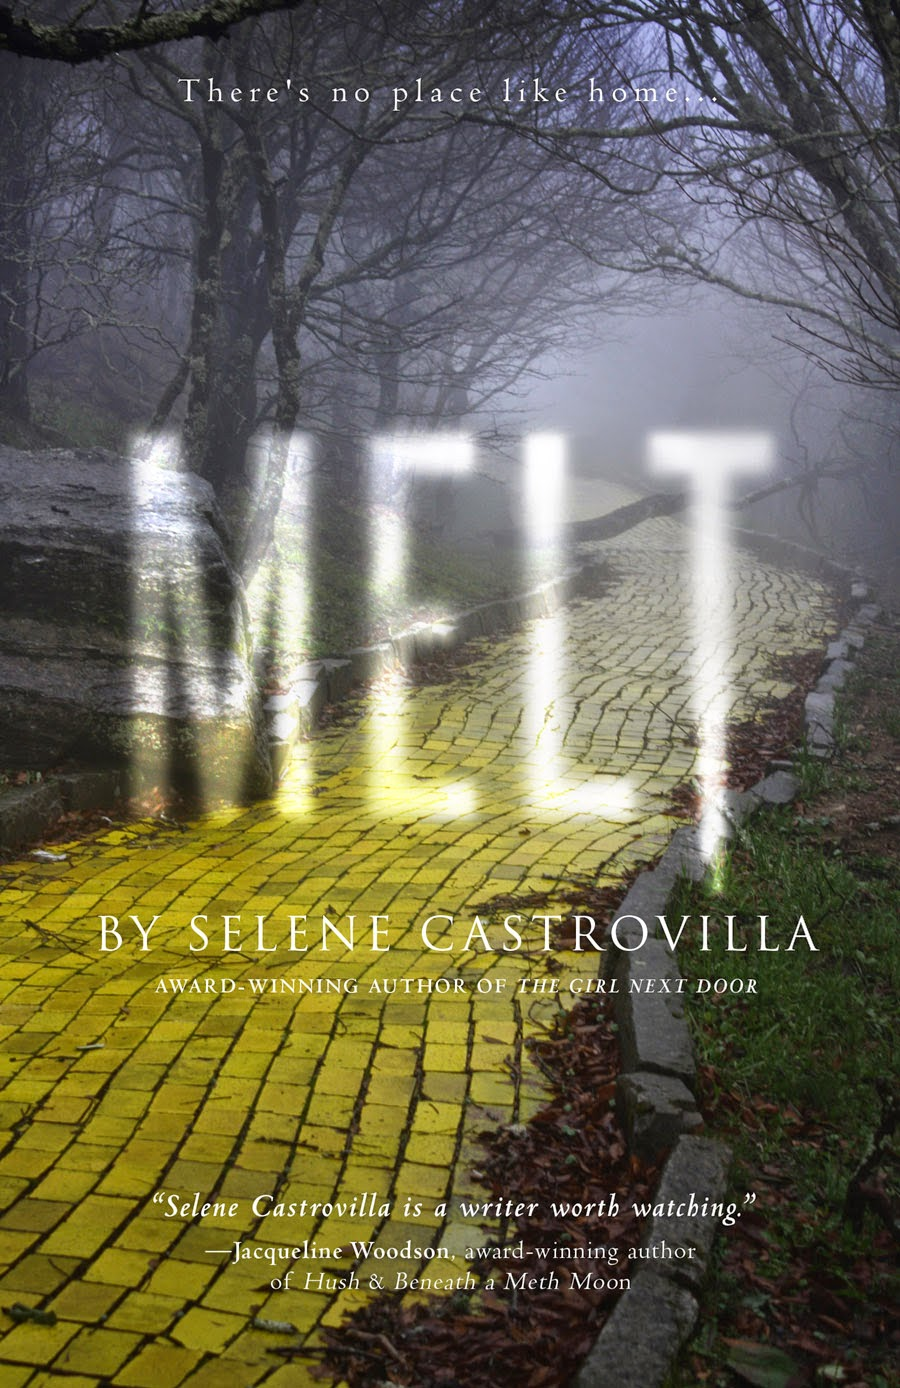 https://www.goodreads.com/book/show/15562682-melt?ac=1